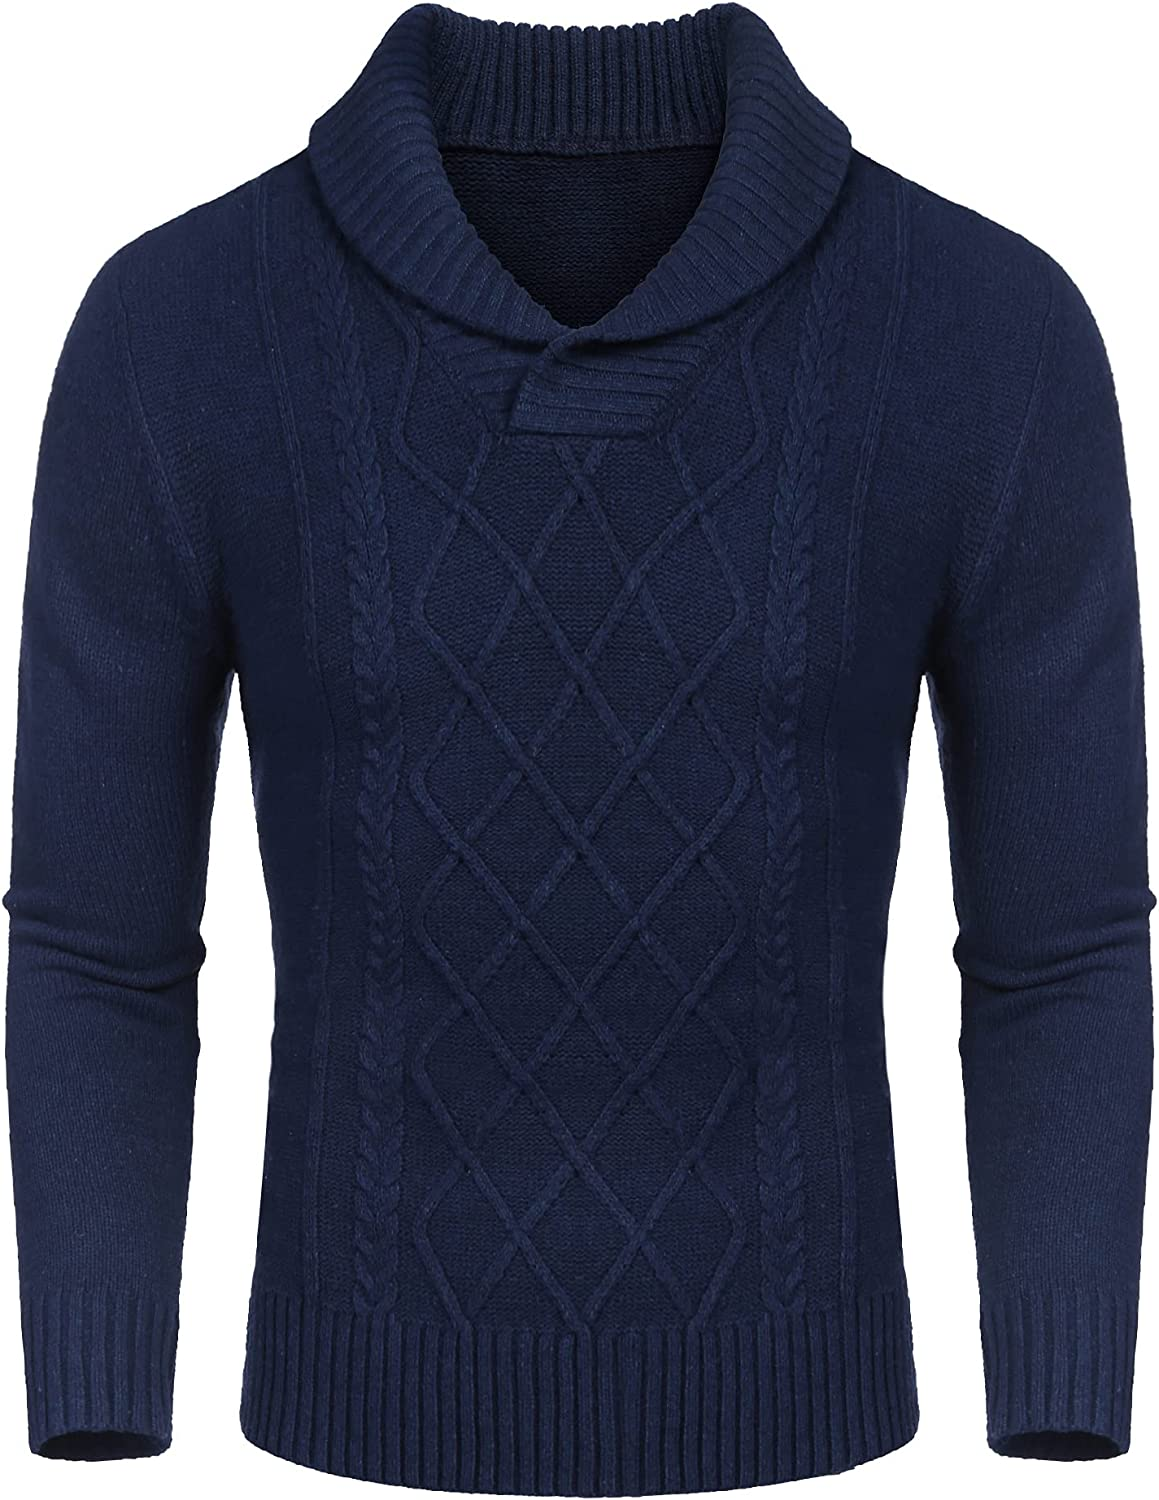 COOFANDY Men's Shawl Collar Sweaters V-Neck Relaxed Fit Cable Pullover